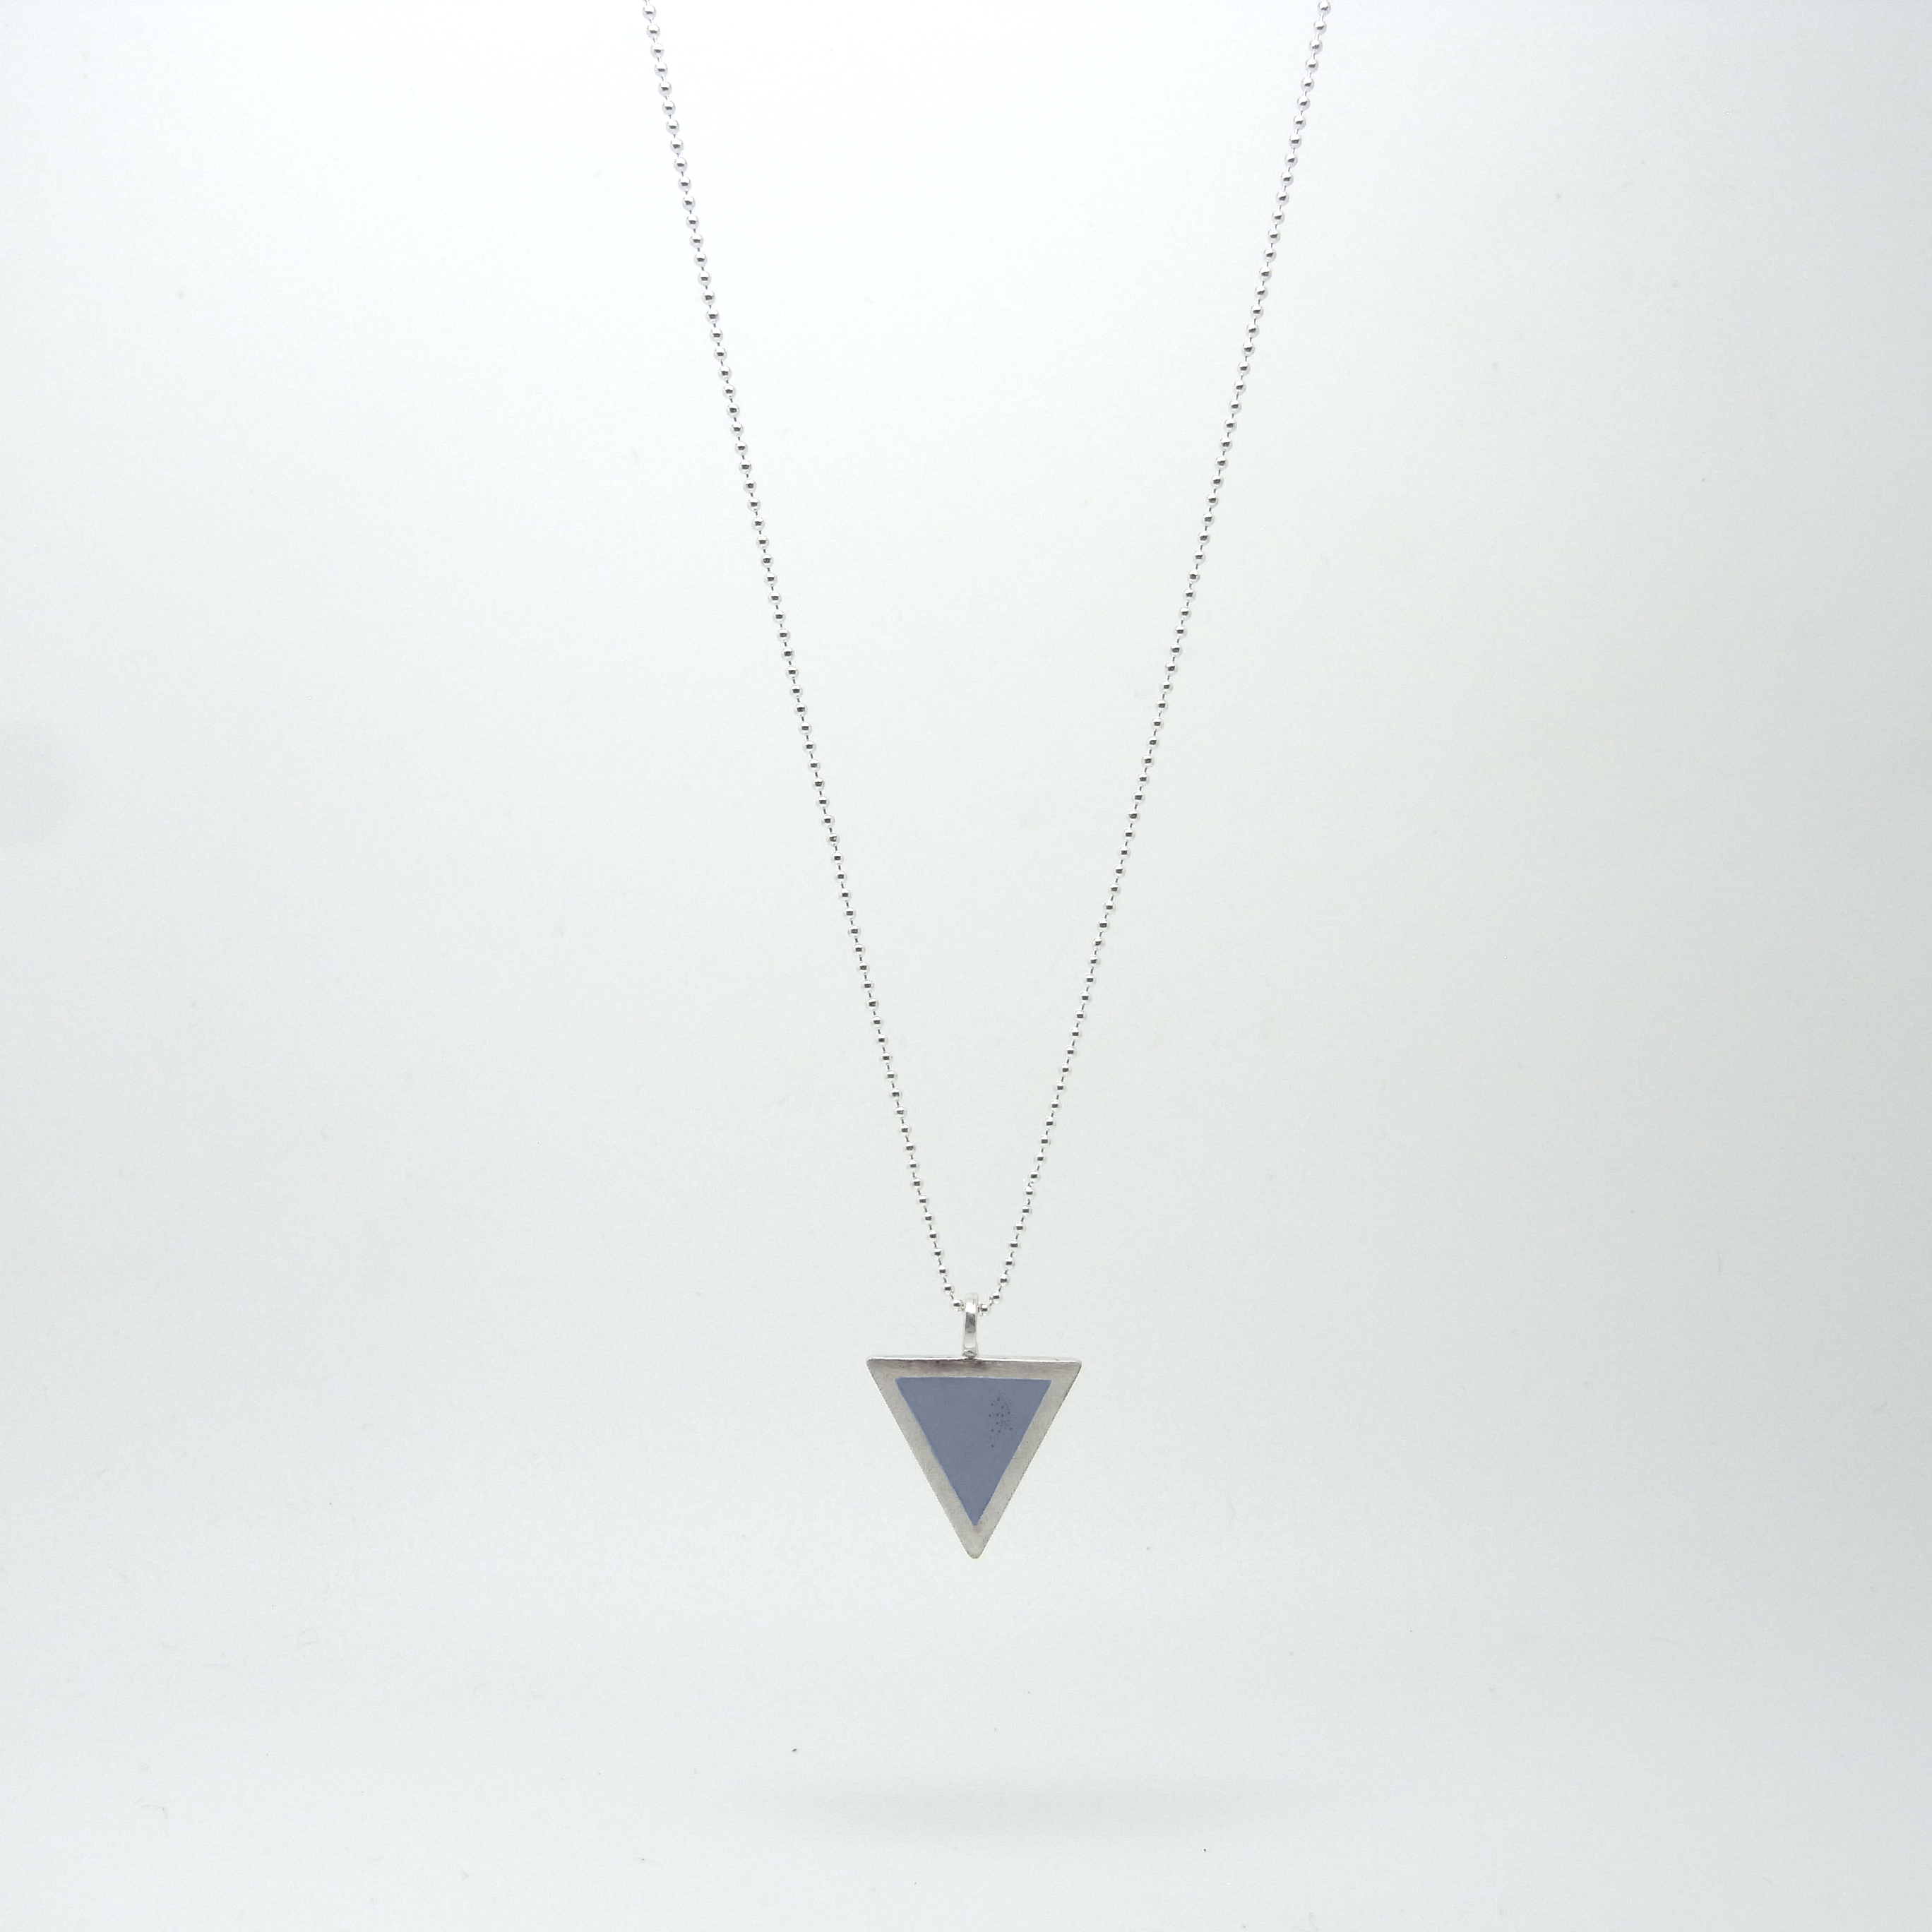 SALE - Triangle Necklace Slate Blue